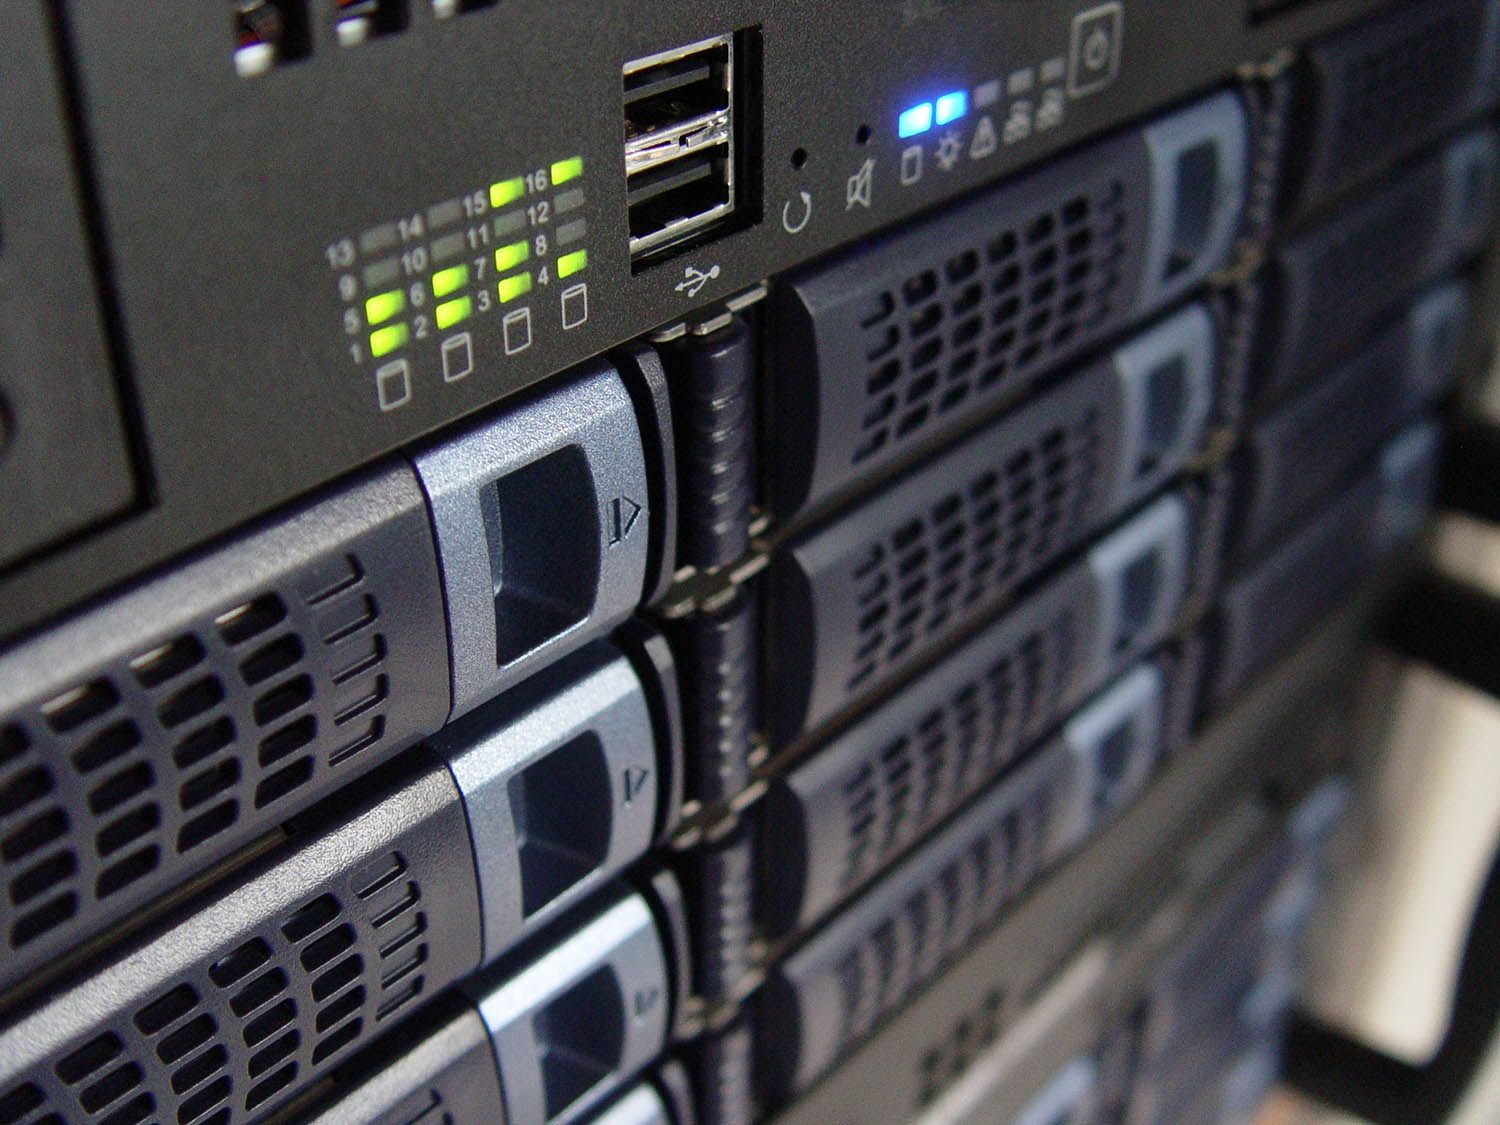 Energy efficiency for computer servers has become more important than ever. Research at Binghamton University is looking to decrease wasted electricity.